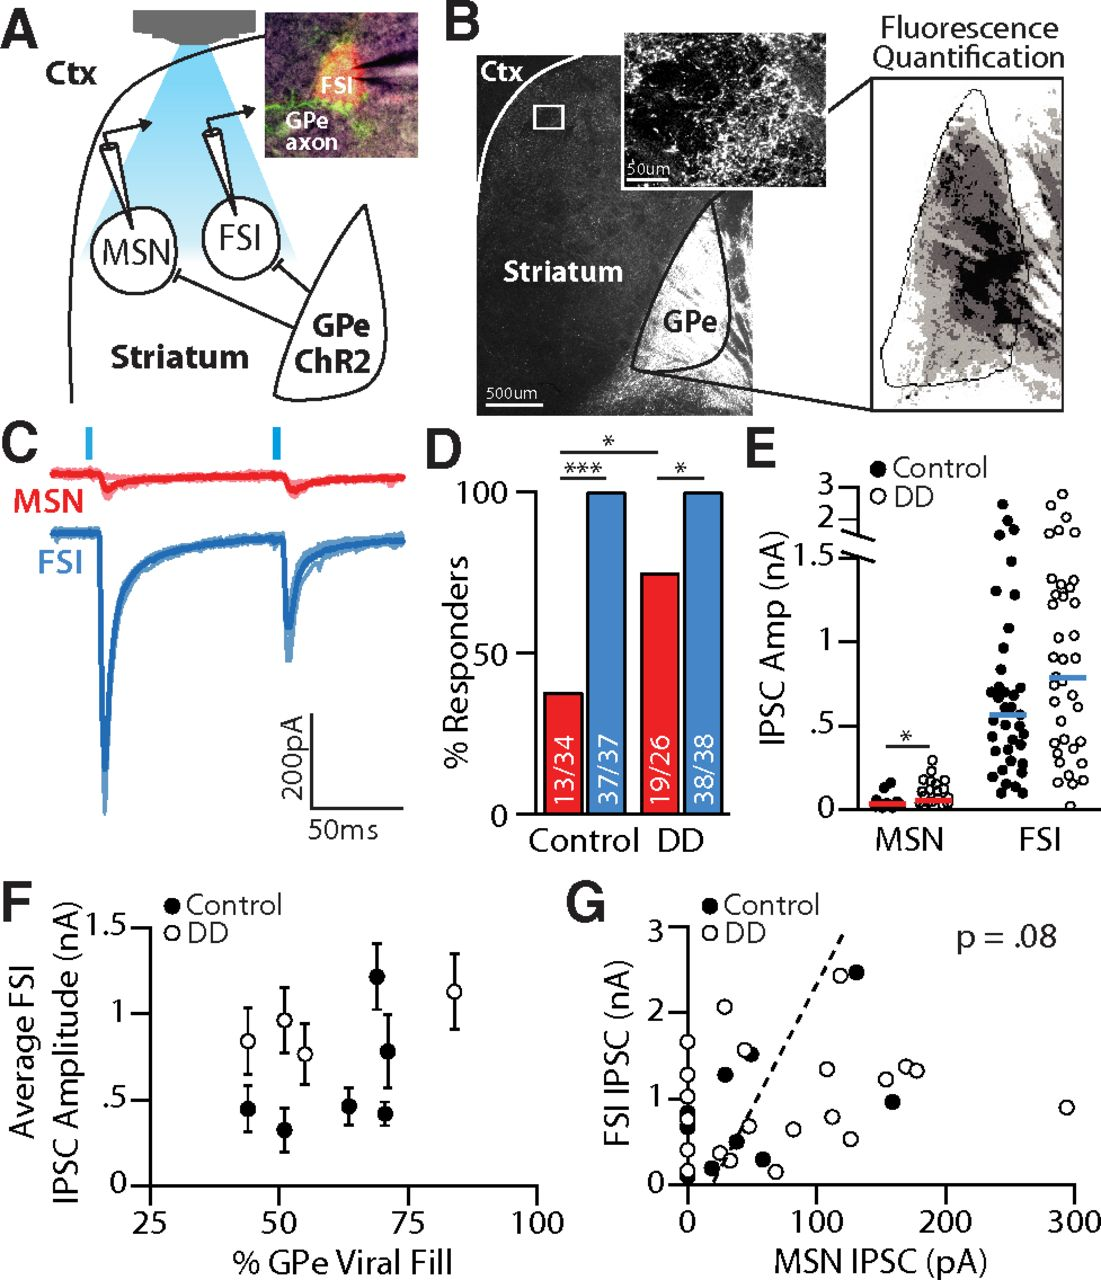 Pallidostriatal Projections Promote β Oscillations in a